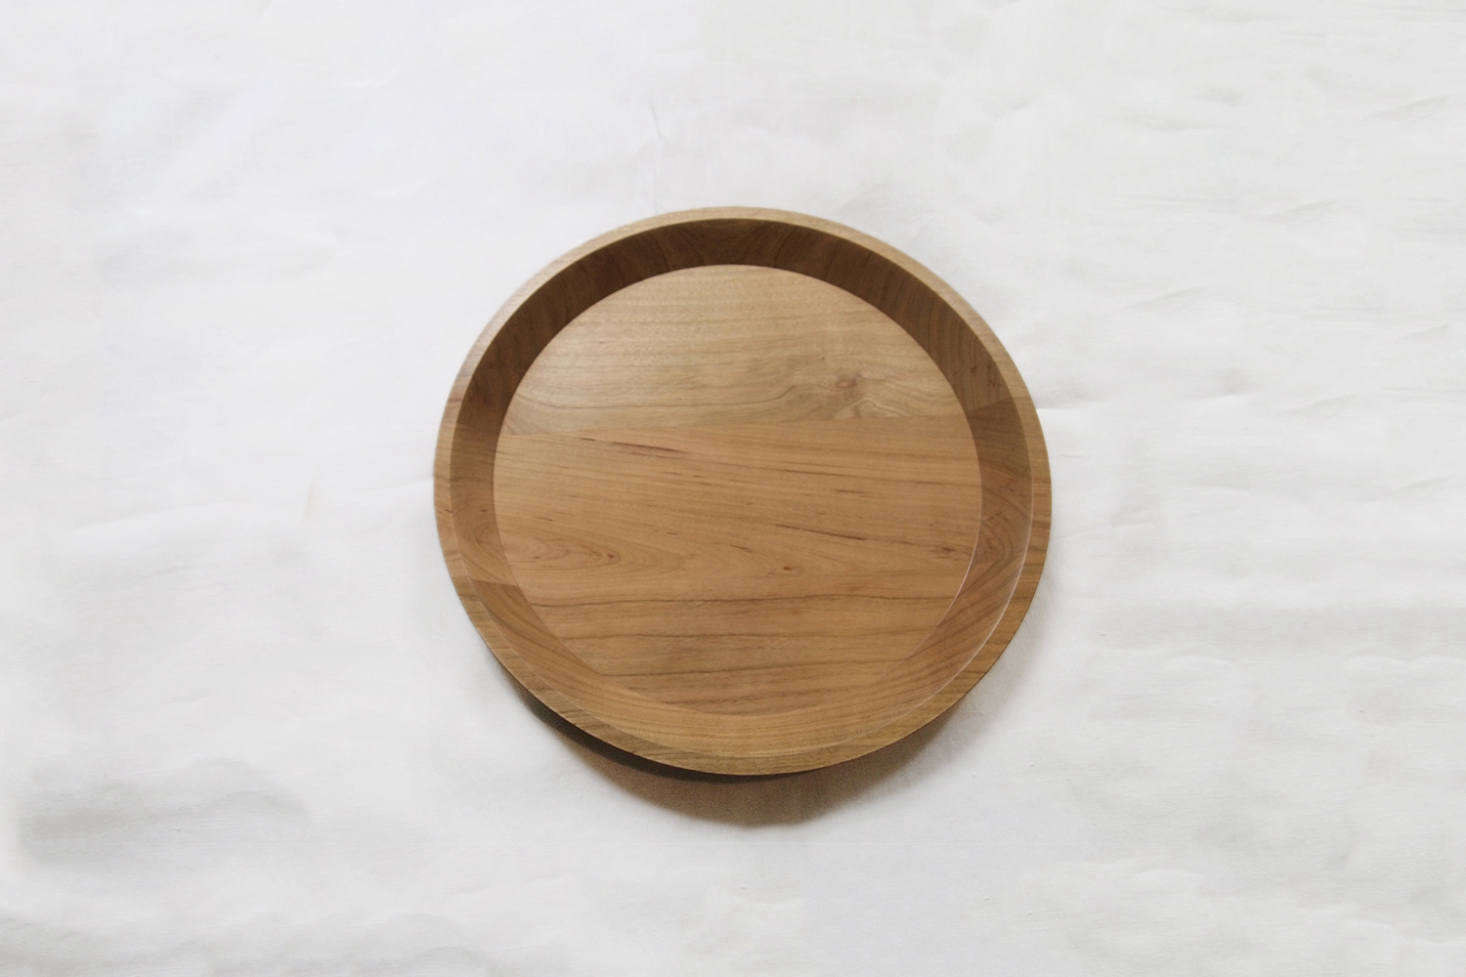 The Masahi Ifuji Tray in Cherry is .5 inches in diameter for $0 at Makié.